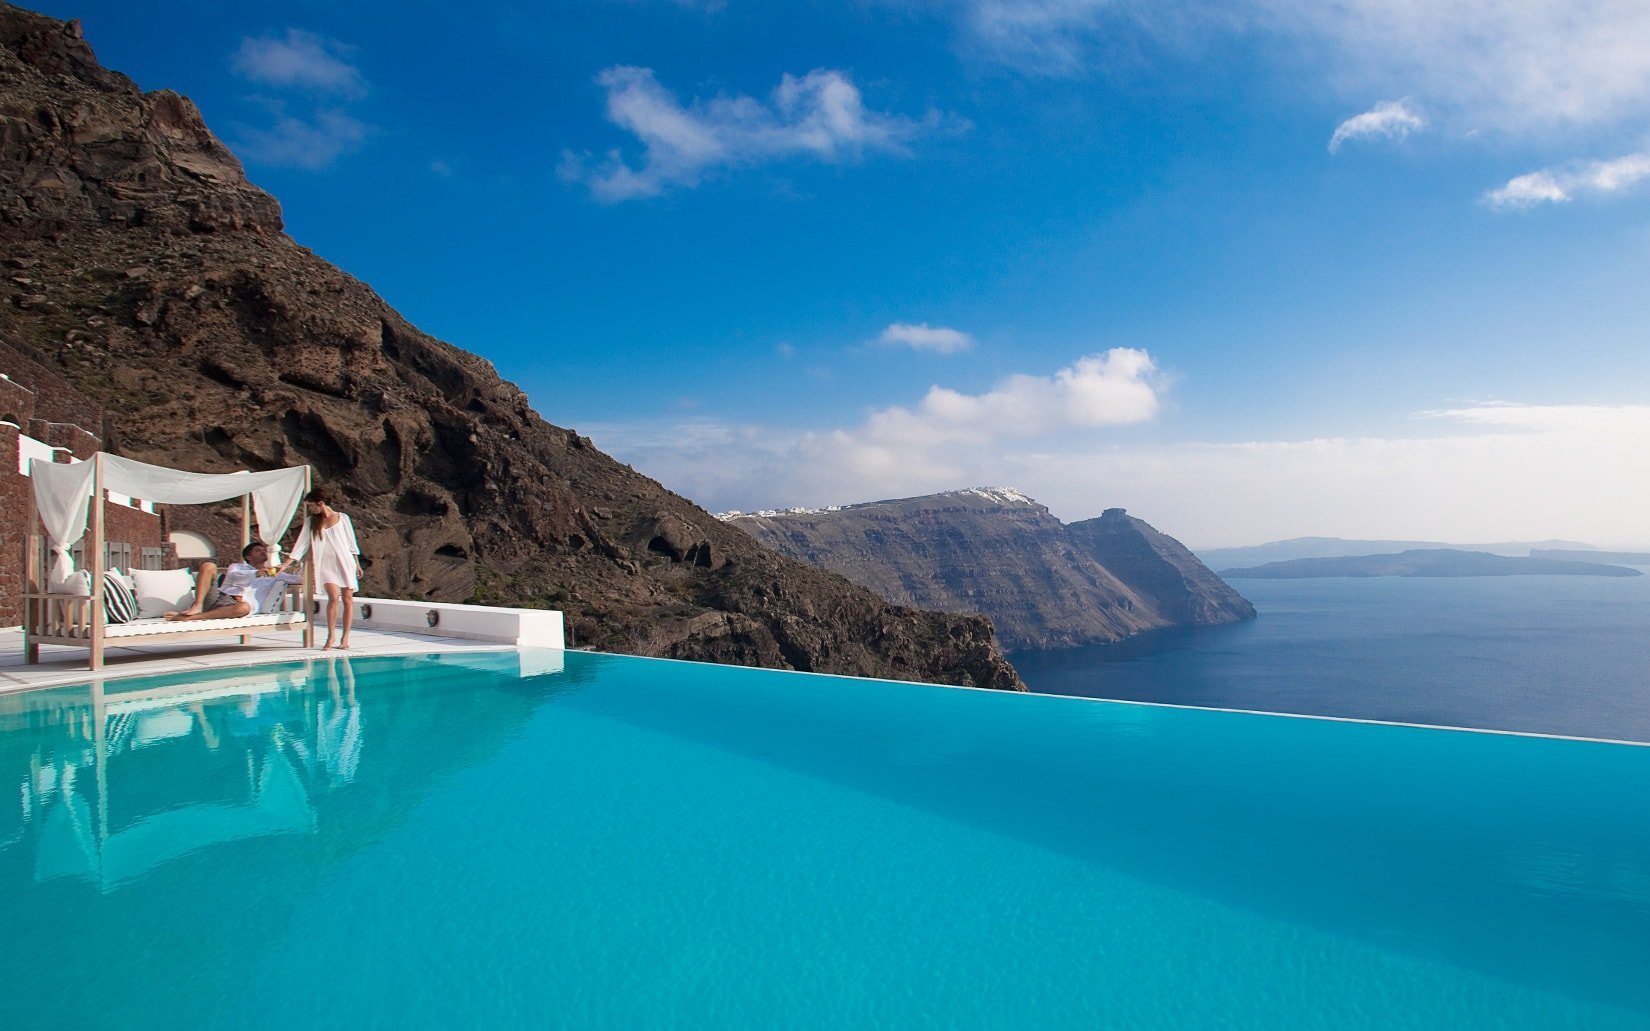 Amazing sea view and infinity pool at the San Antonio luxury 5 star Hotel in Imerovigli, Santorini